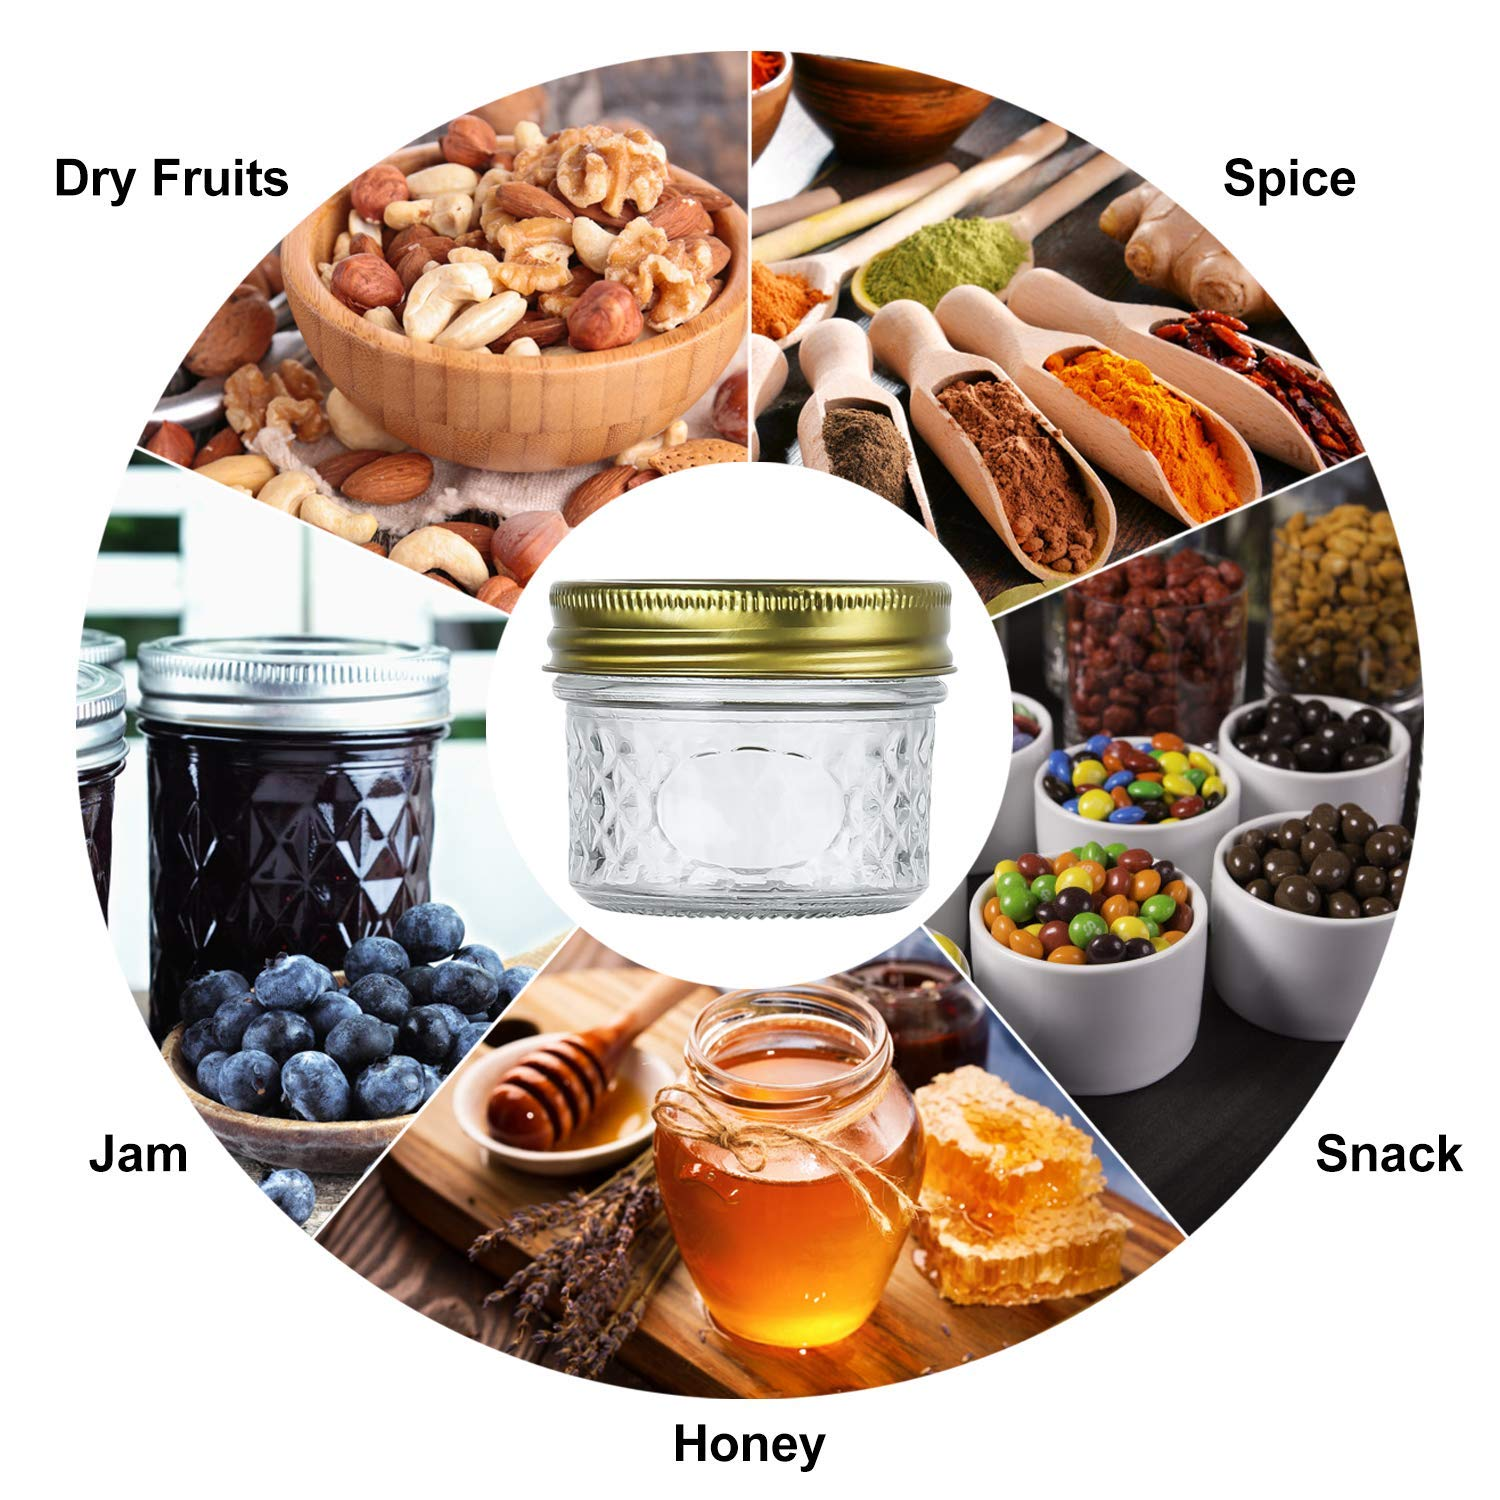 Encheng 4 oz Glass Jars With Lids And Bands,Small Canning Jars For Caviar,Herb,Jelly,Jams,Mini Wide Mouth Mason Jars For Kitchen Storage Preserving Food And Party Favors 40 Pack ... by Encheng (Image #5)